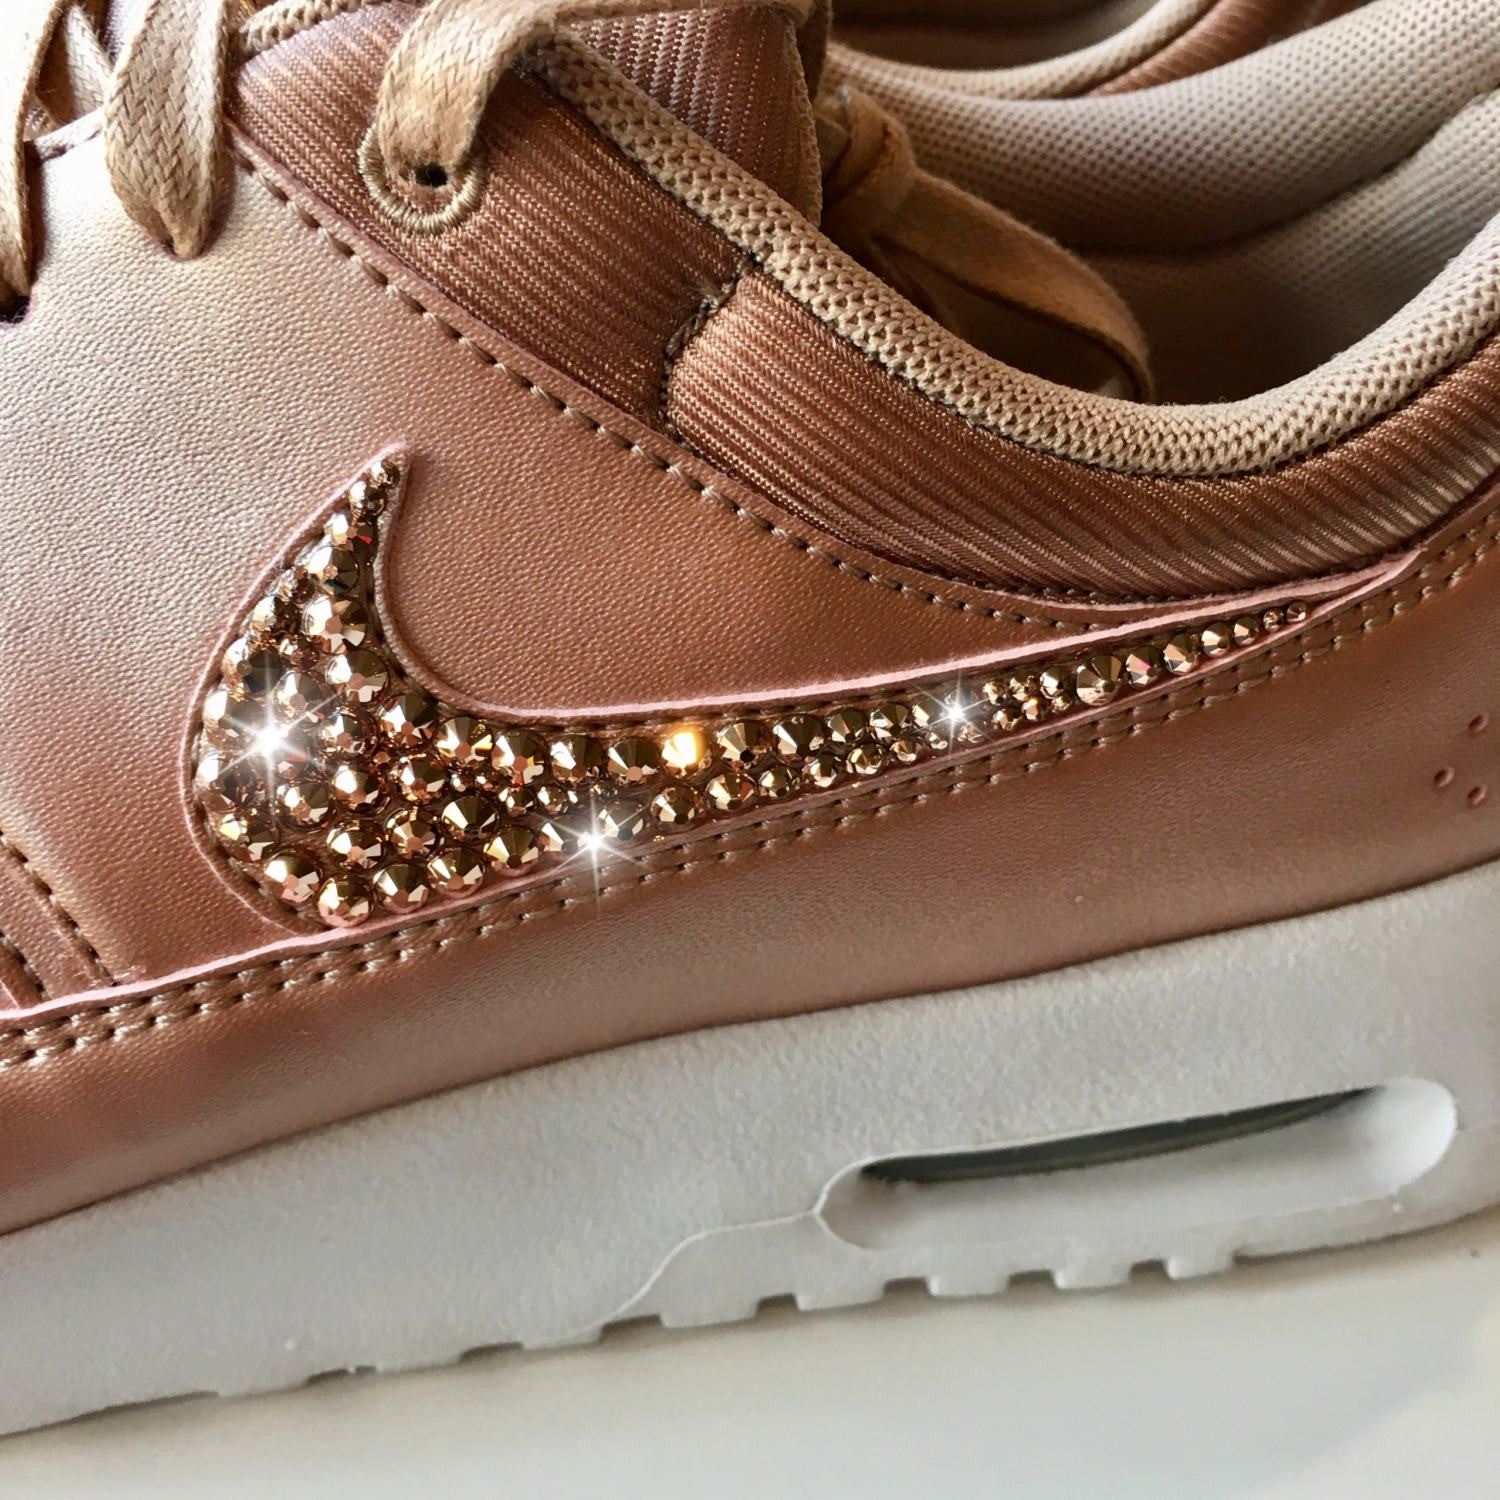 best authentic d4d48 0200d ... ROSE GOLD Bling Nike Air Max Thea Metallic SE Shoes with Swarovski  Crystals  Bedazzled with ...